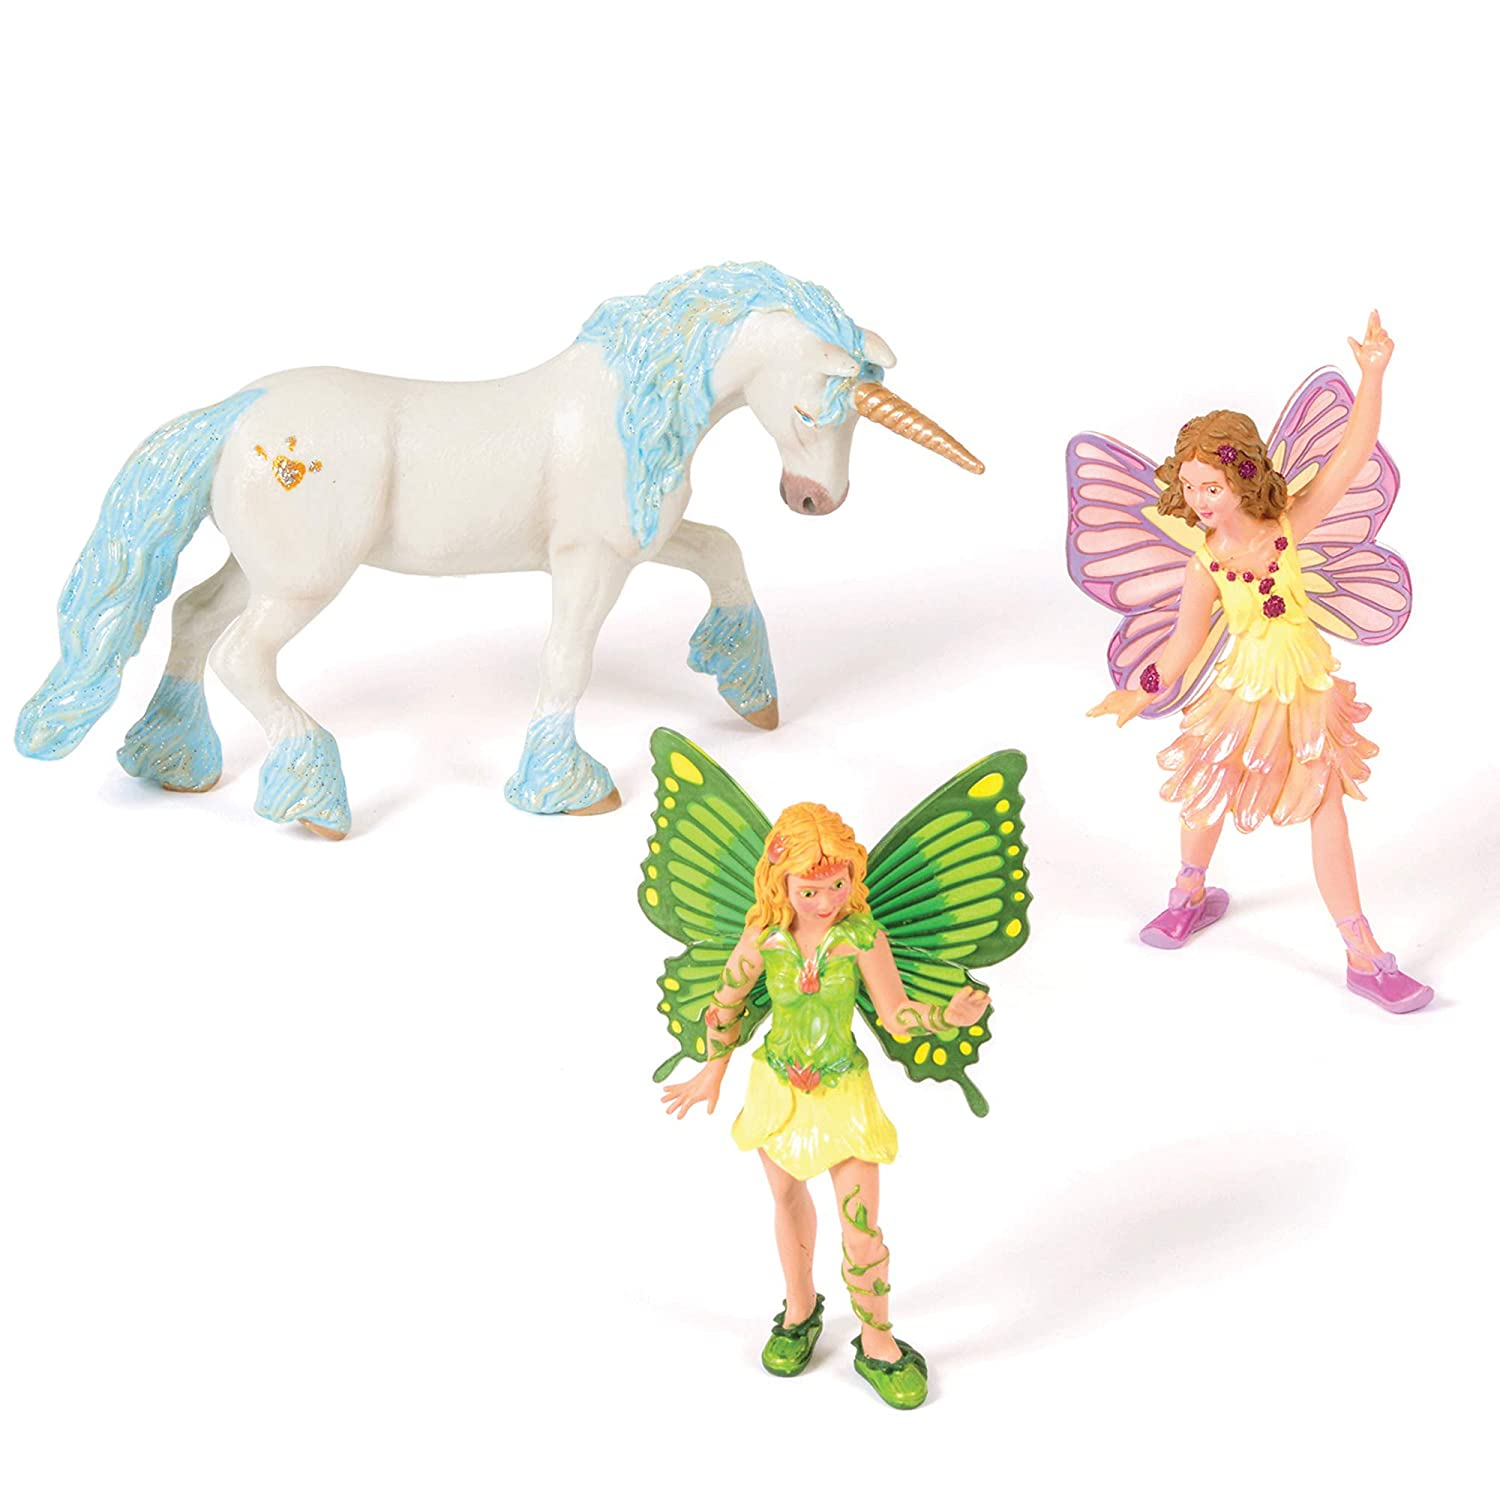 Great for childrens story Set of 2 winged colourful Fairies /& Unicorn play figurines Set to explore magical worlds of fluttering fairies /& a beautiful unicorn language /& small world play